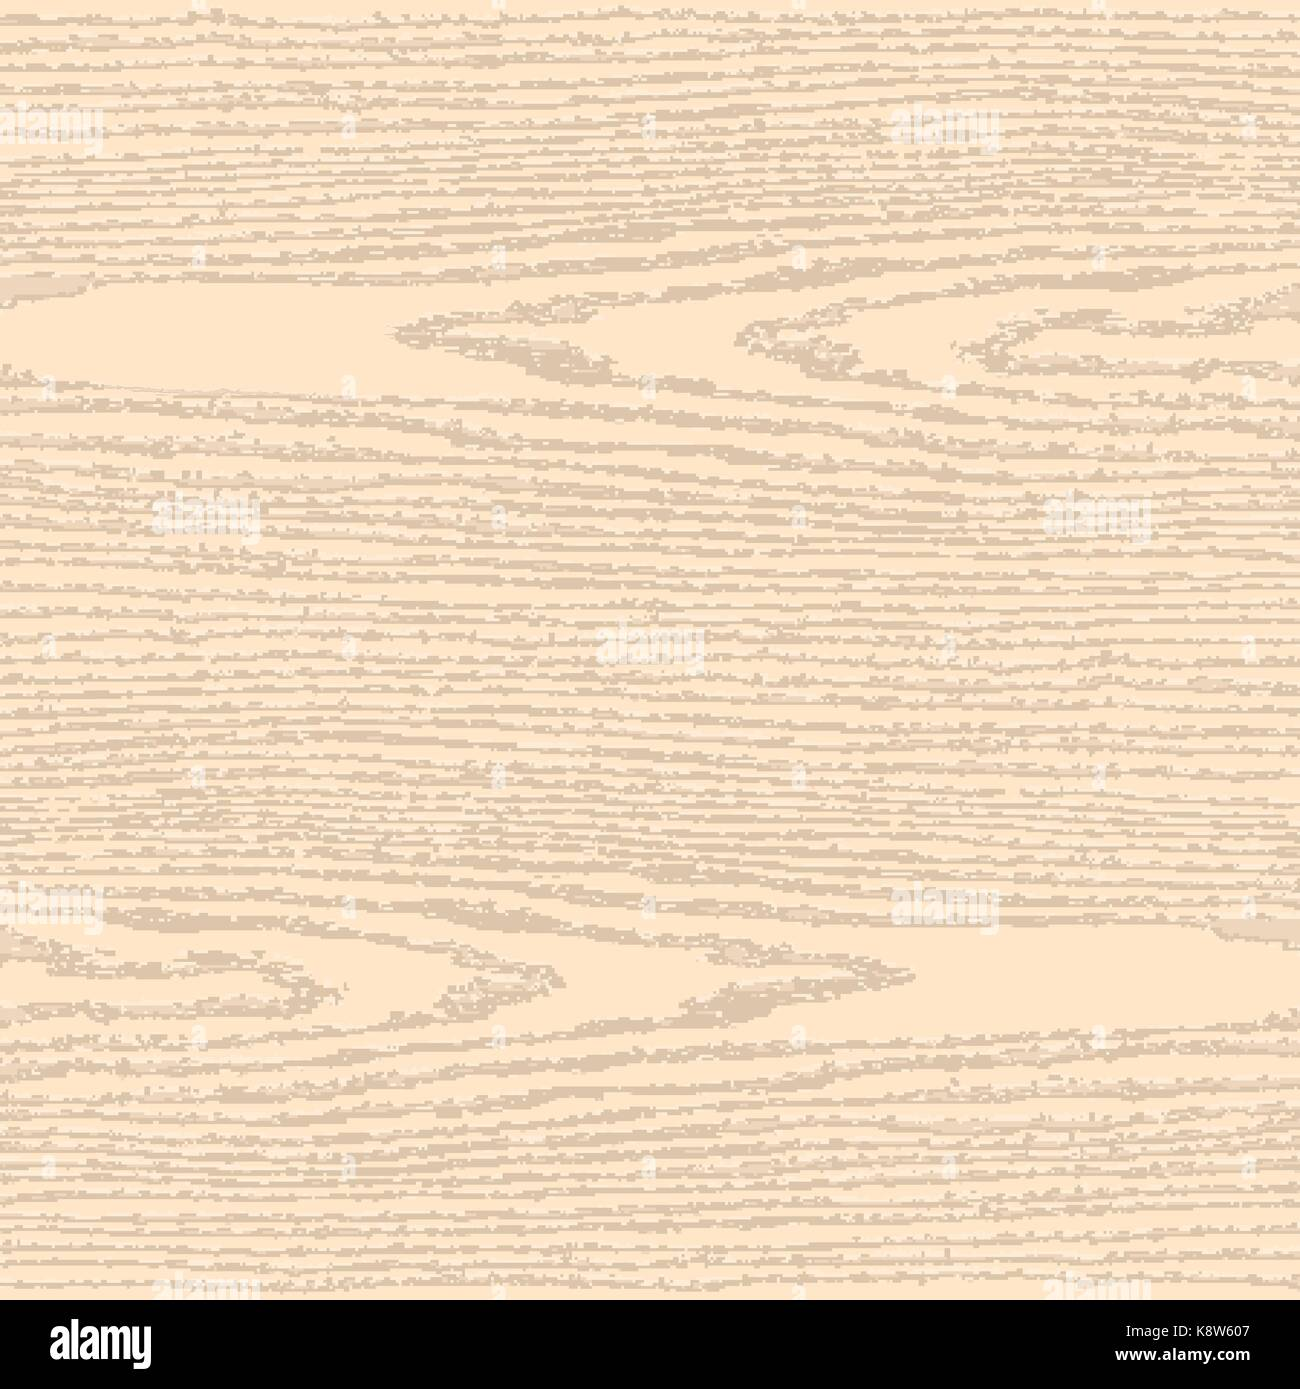 Colored wood texture background in square format. Blank natural pattern swatch template. Realistic plank with annual - Stock Image